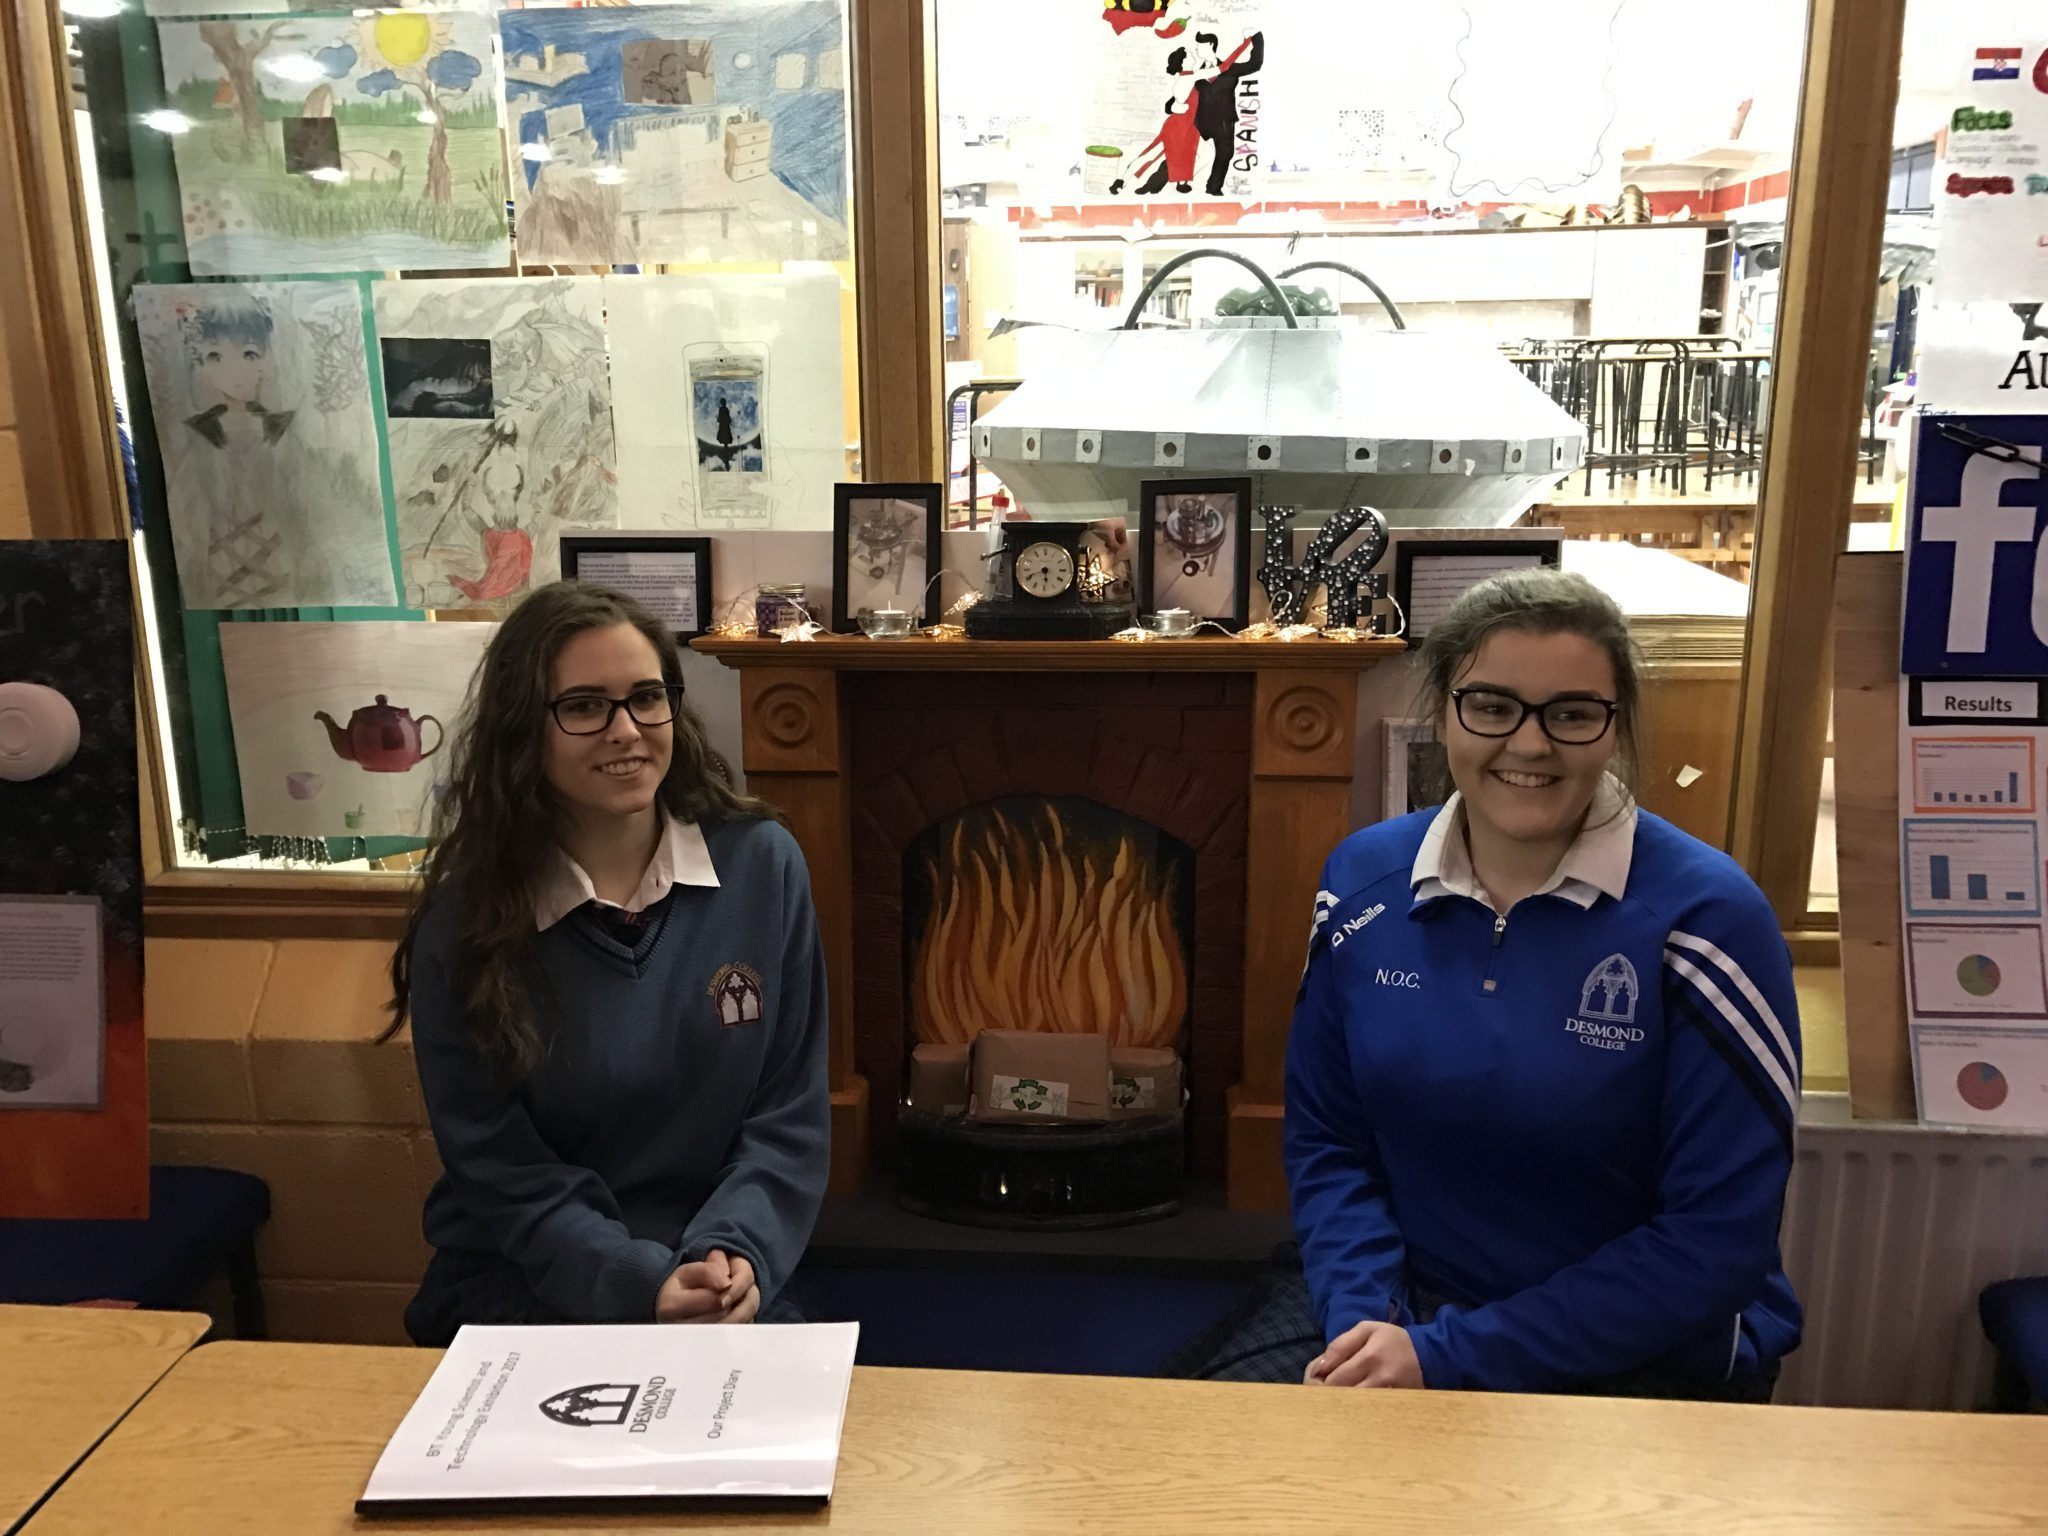 11 January 2017: BTYSTE 2017 - A Rush to Biomass – Senior Biological and Ecological (Jaimie Cambell and Niamh O Connell)